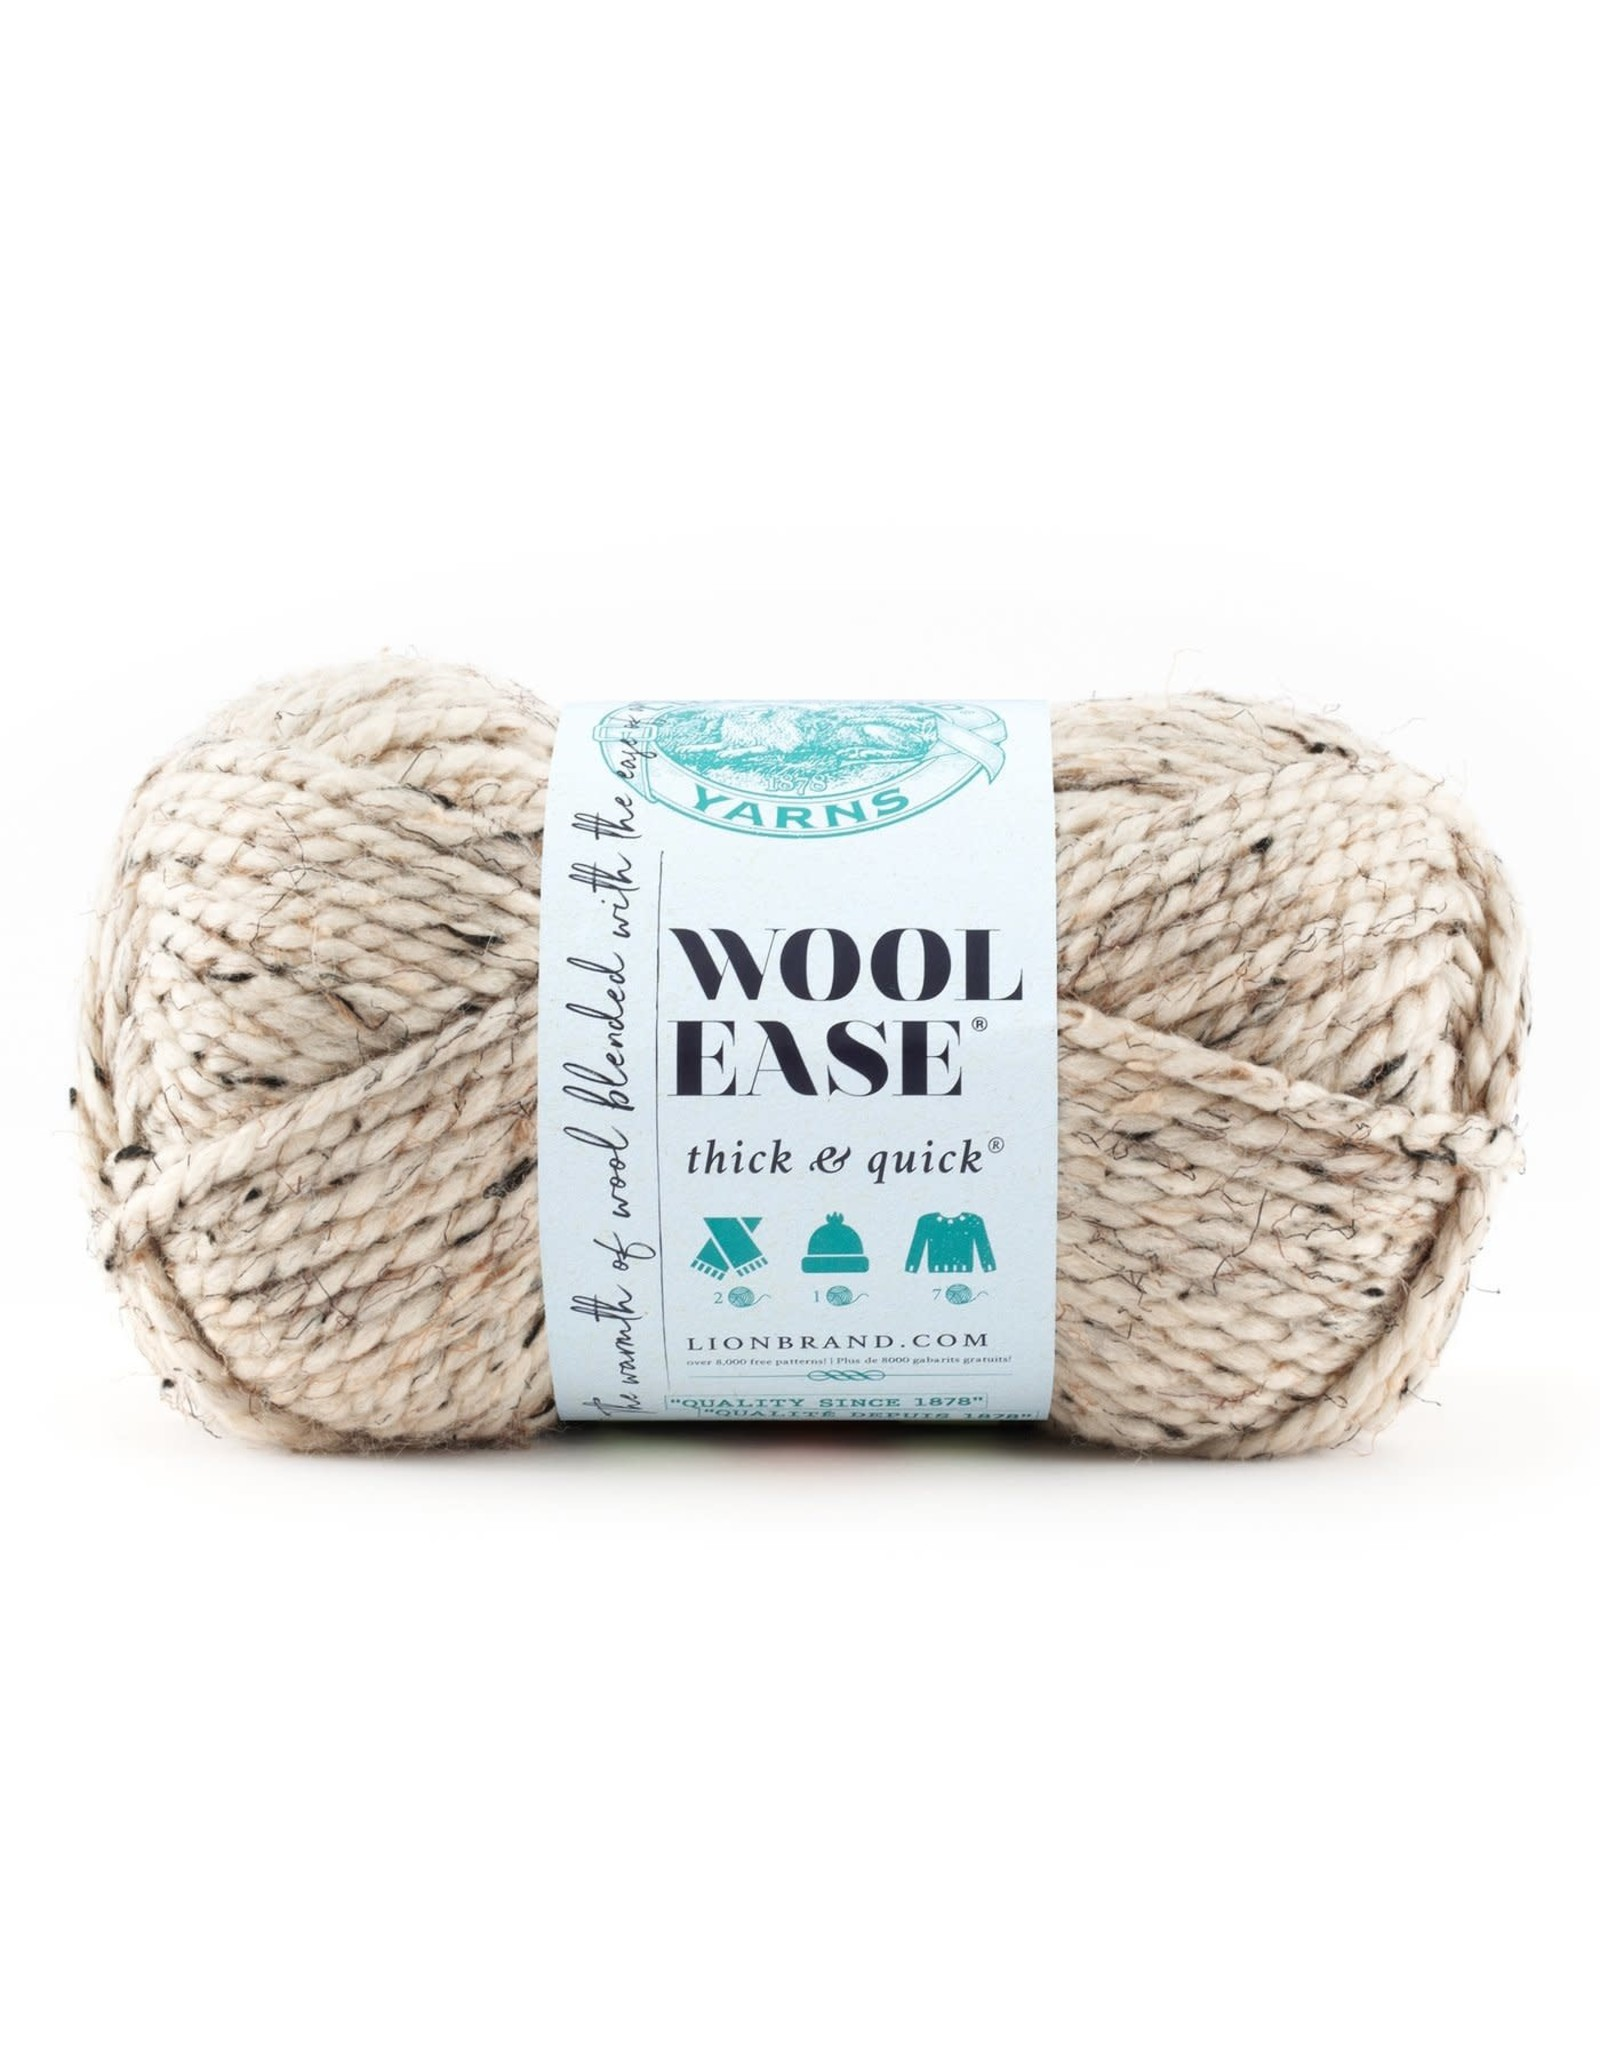 Oatmeal - Wool Ease Thick and Quick - Lion Brand